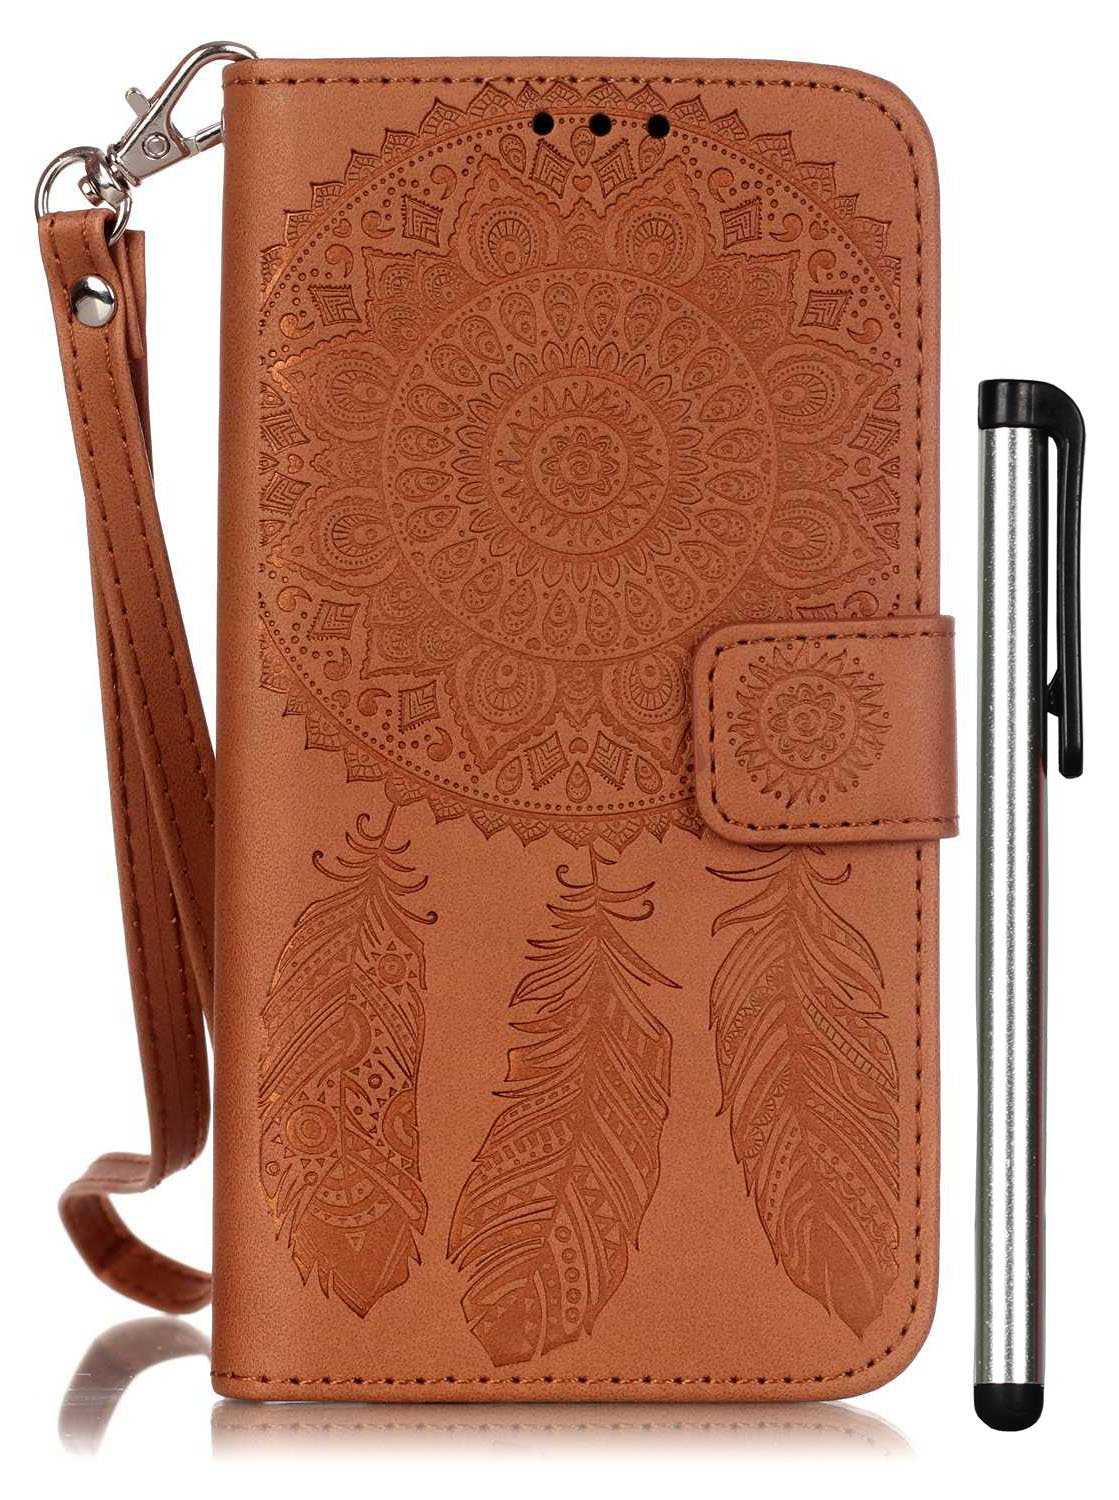 Galaxy S5 Phone Case Brown Leather Wallet Full Body Magnet Book Cover Cell Phone Accessories with Stand 3 Credit Card Holders Cash Slot Wrist Strap Handmade Embossed Fashion Wind Chimes I9600 SV G900